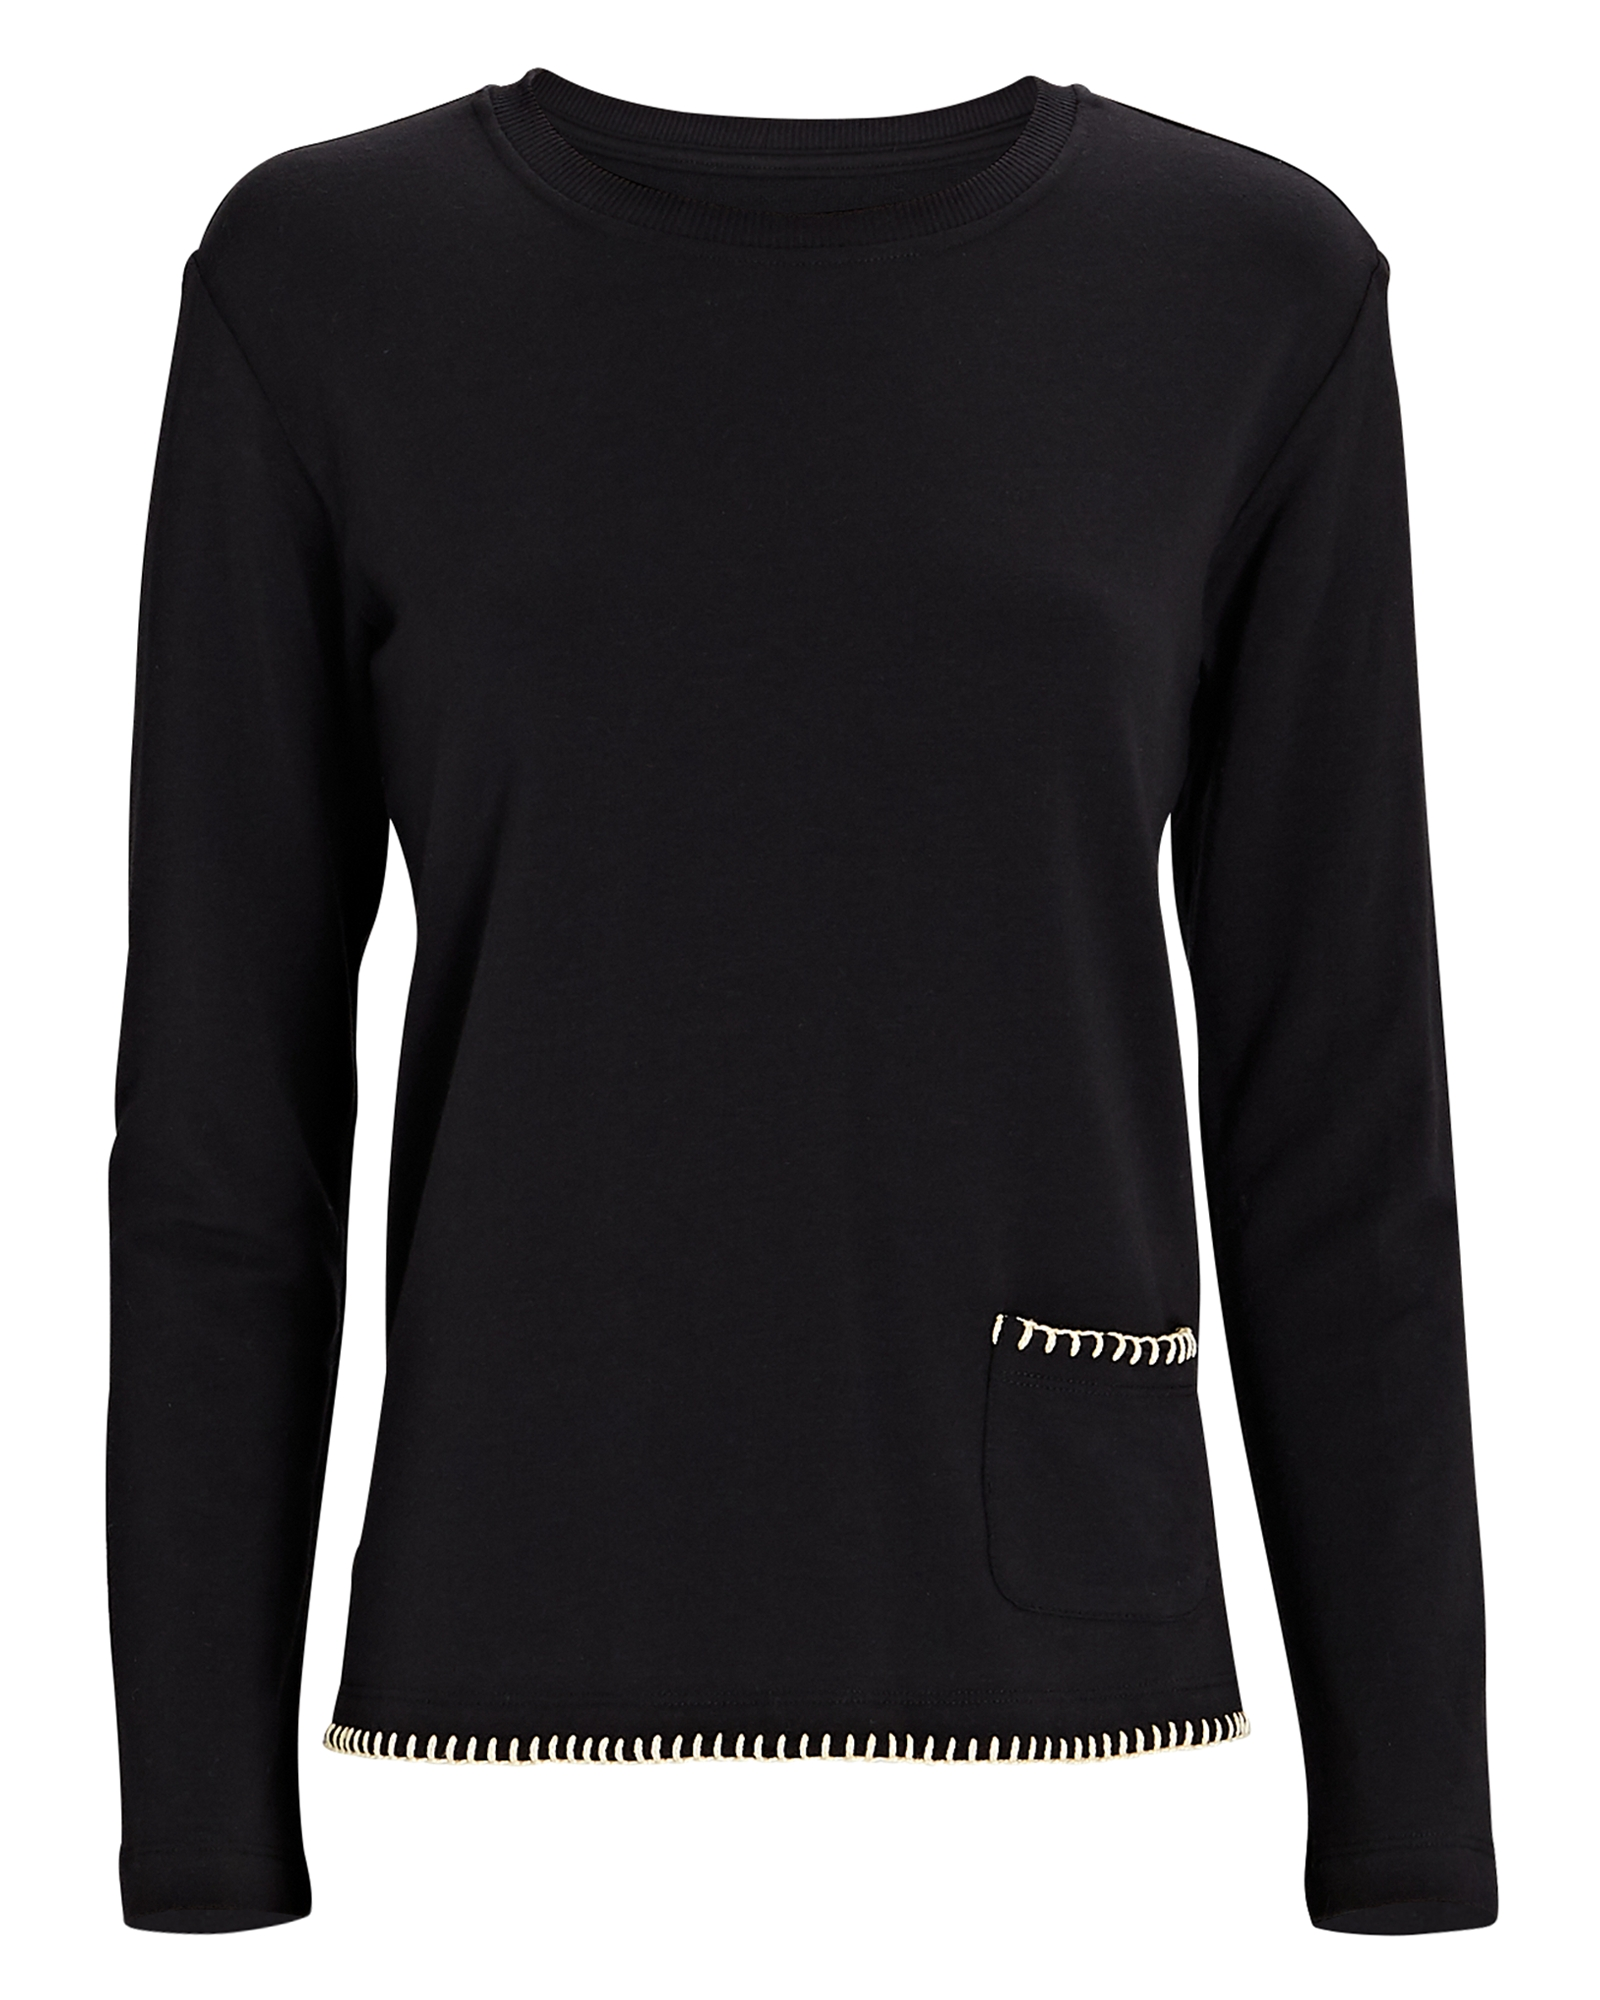 L Agence Christy Split Hem Sweatshirt